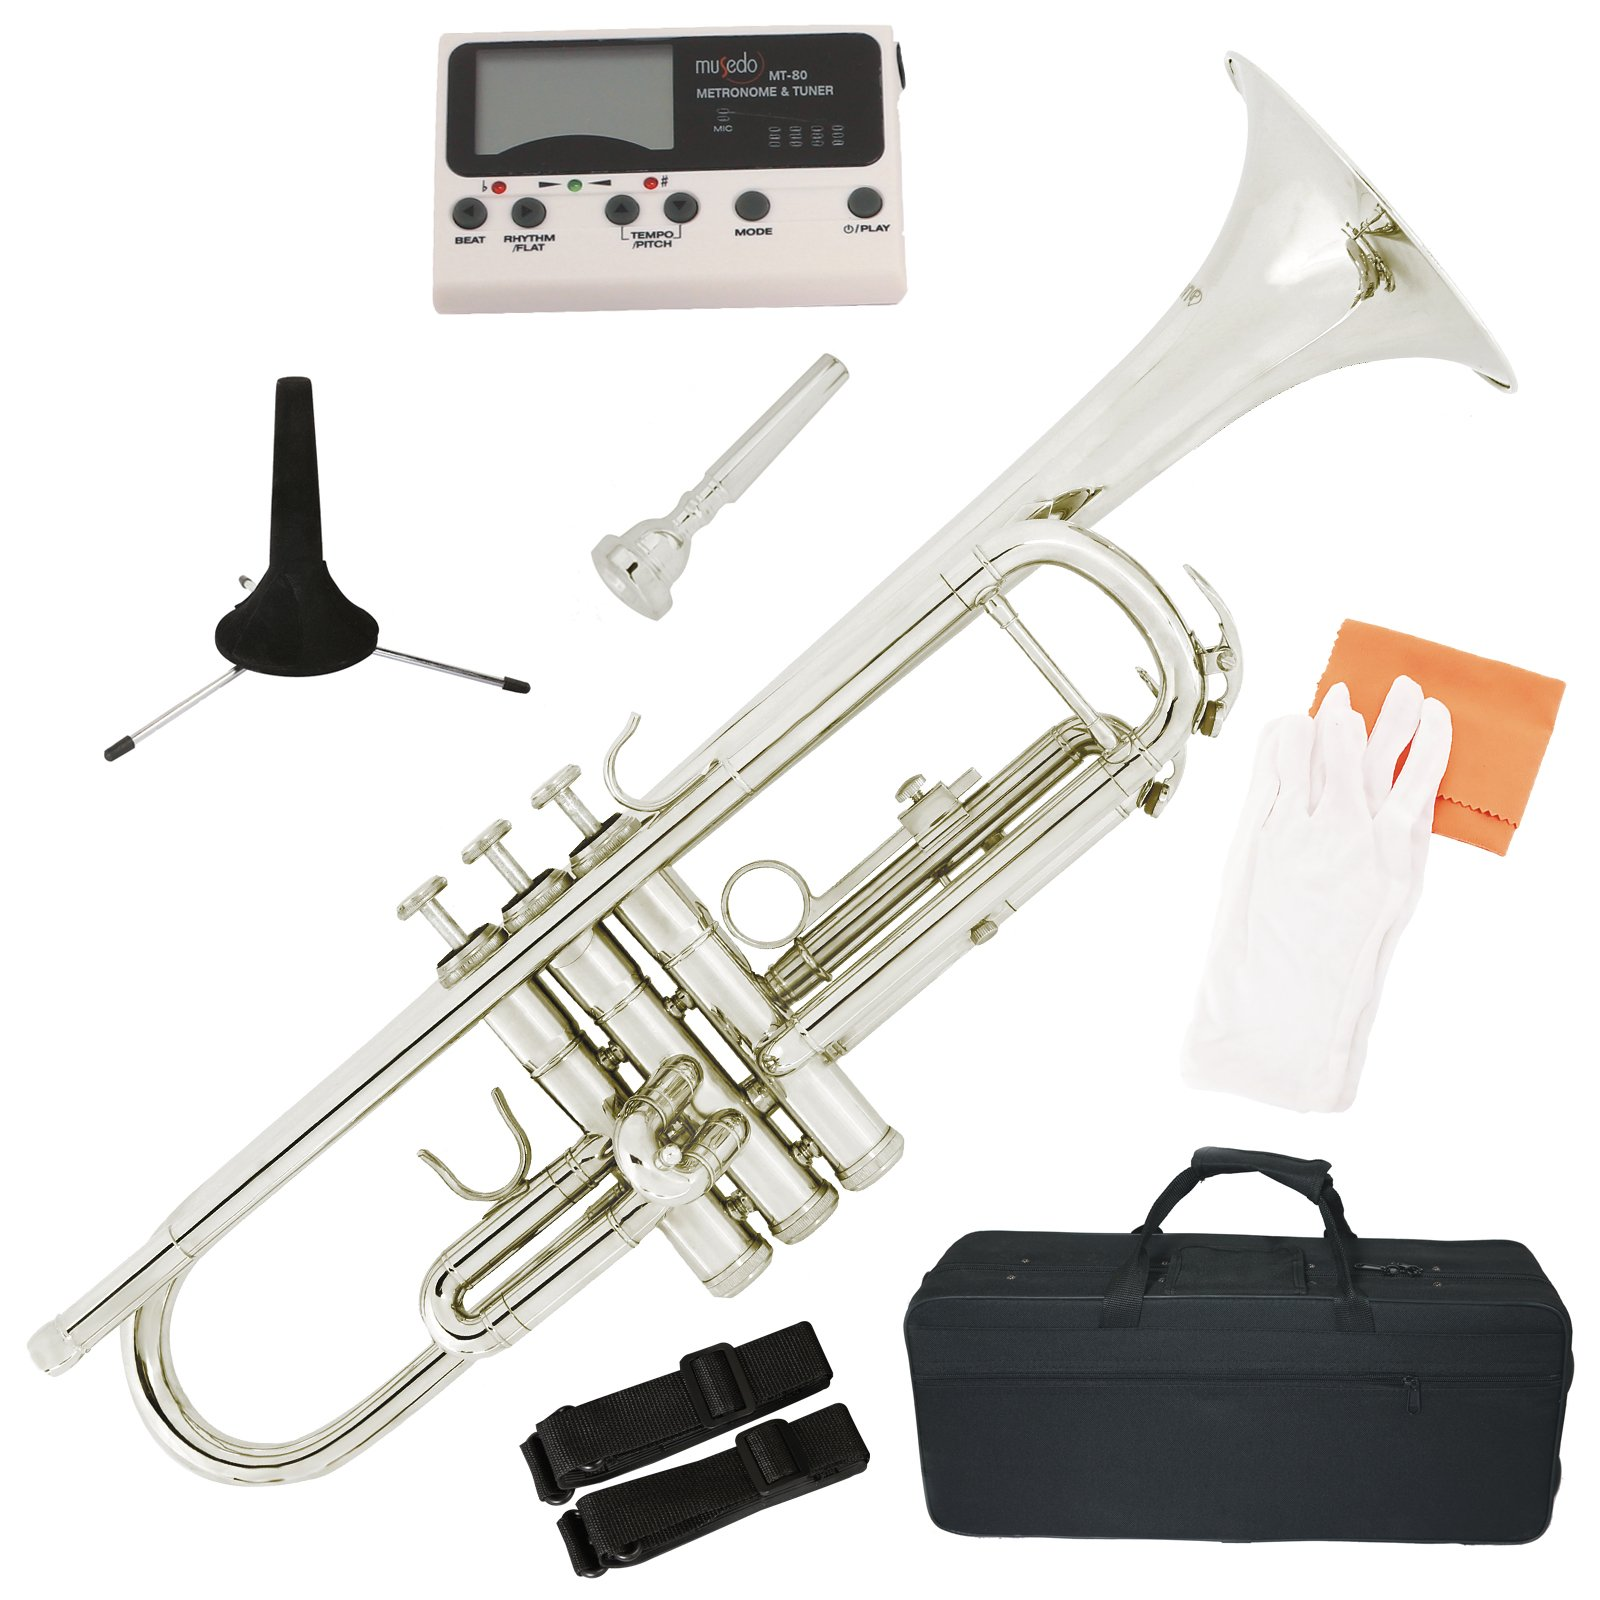 LAGRIMA Brass Bb Trumpet Nickel Silver Plated with Tuner, Case,Mouthpiece,Care Kit for Beginner Student Band